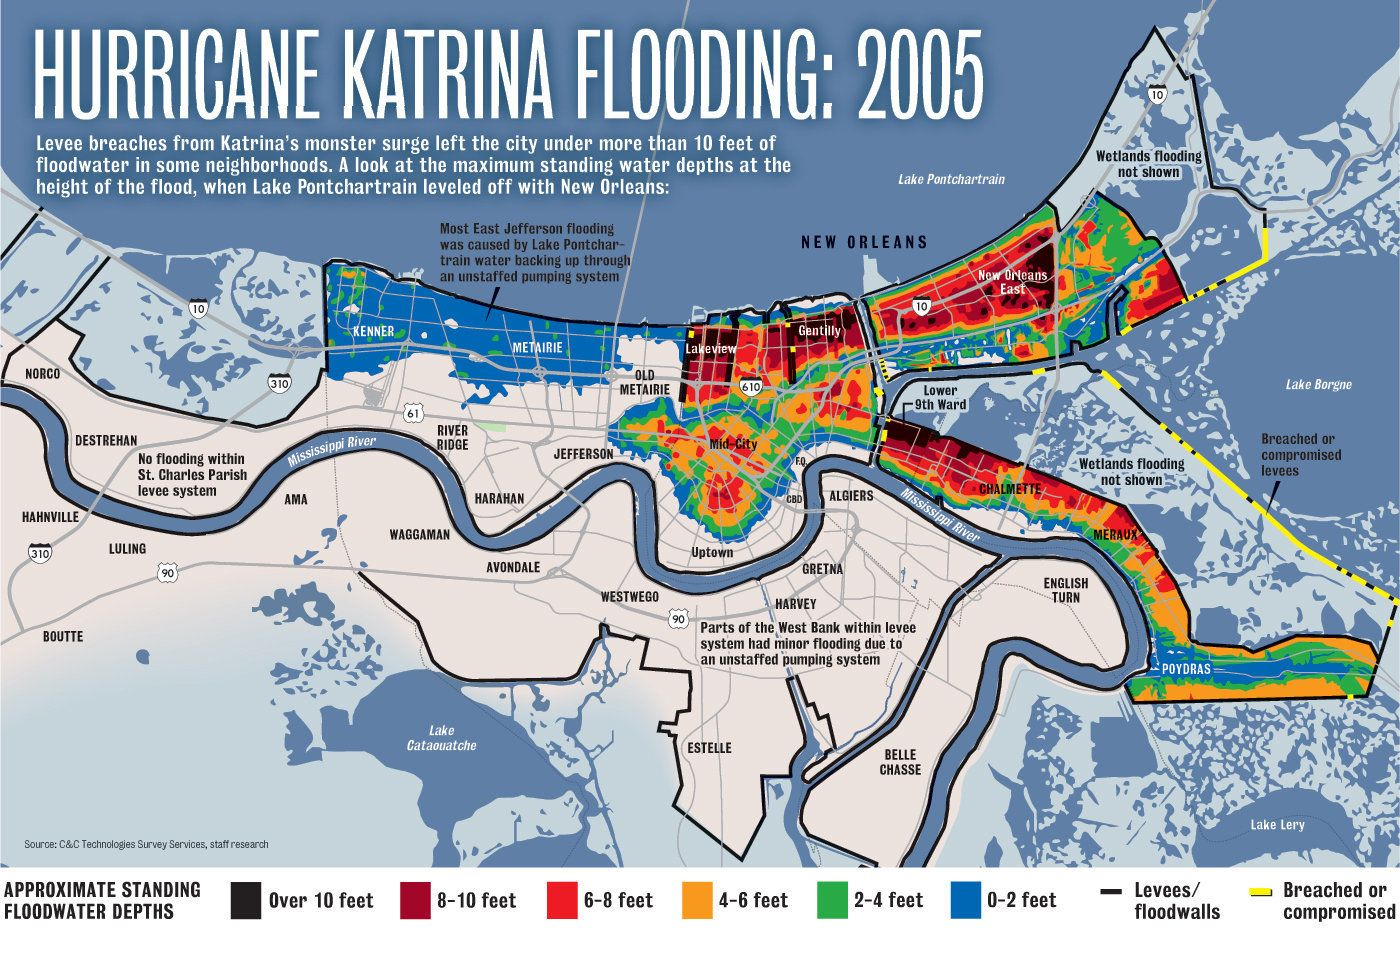 Hurricane Katrina New Orleans Map.Hurricane Katrina Flooding Compared To A 500 Year Storm Today